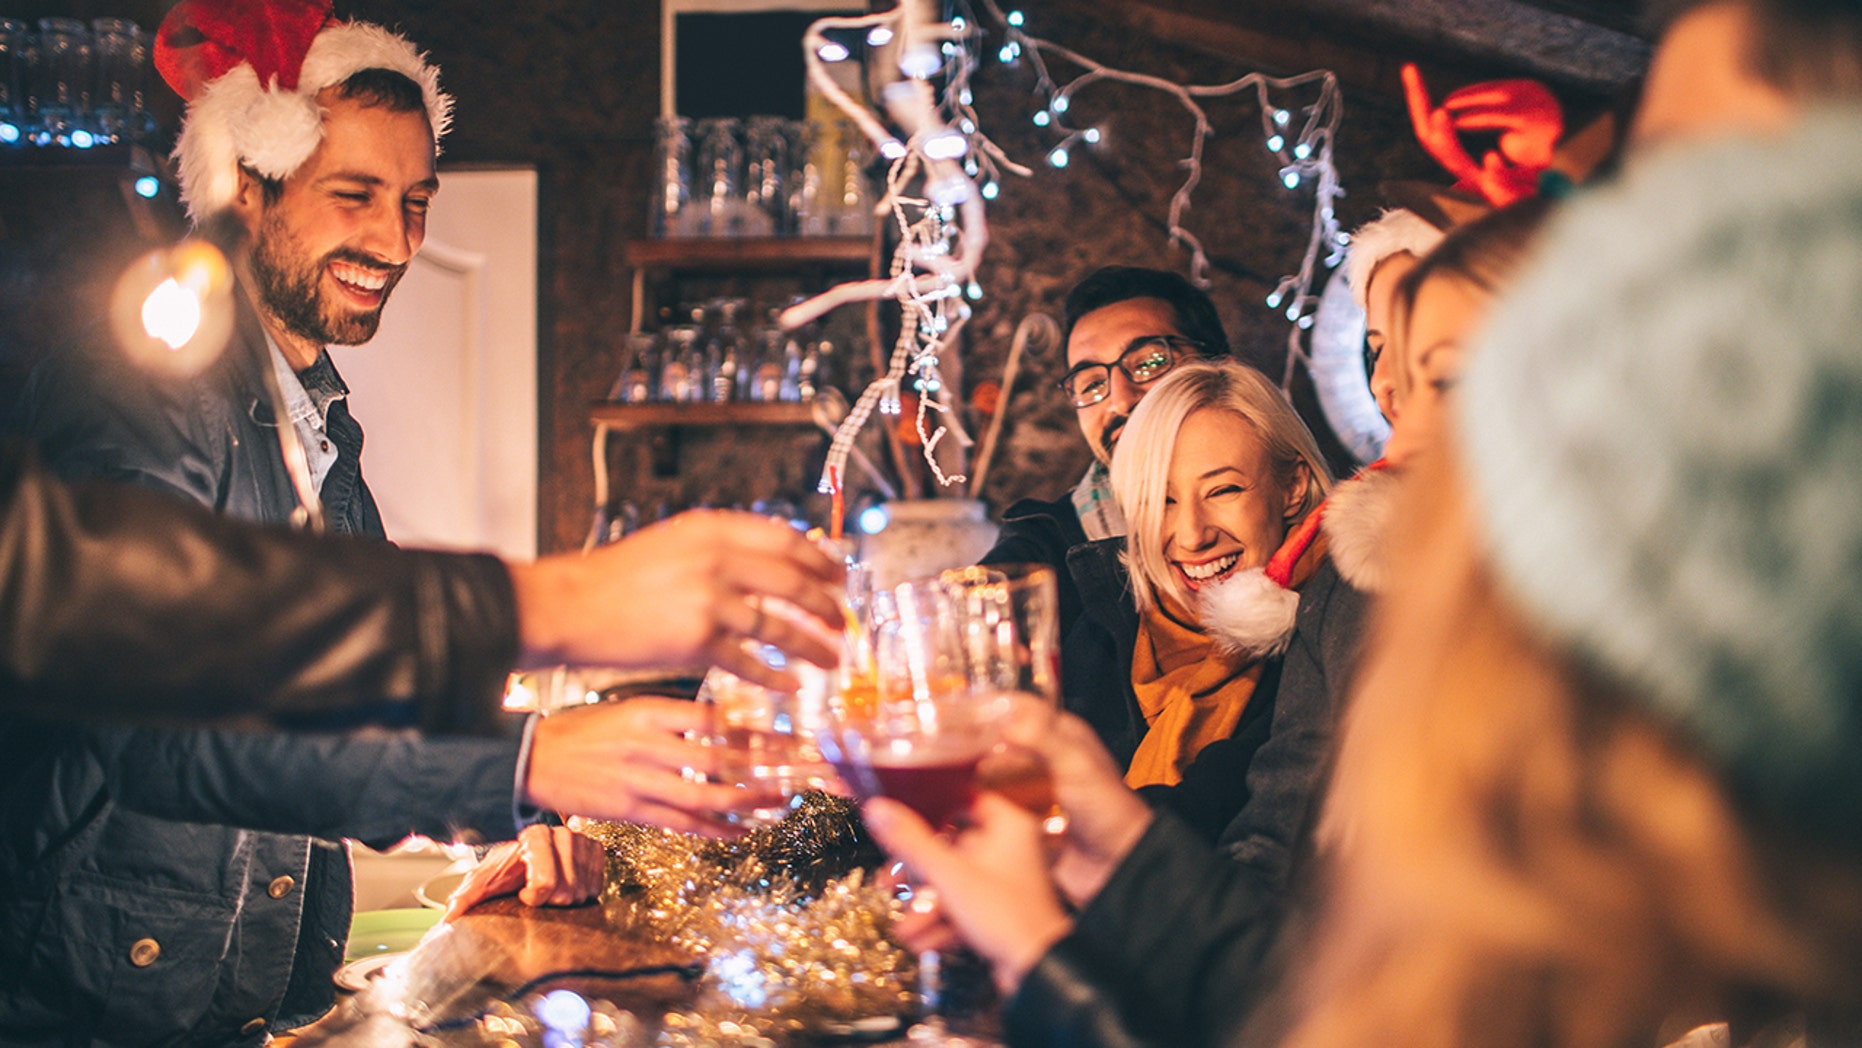 During the holiday season, Americans consume twice as much alcohol.